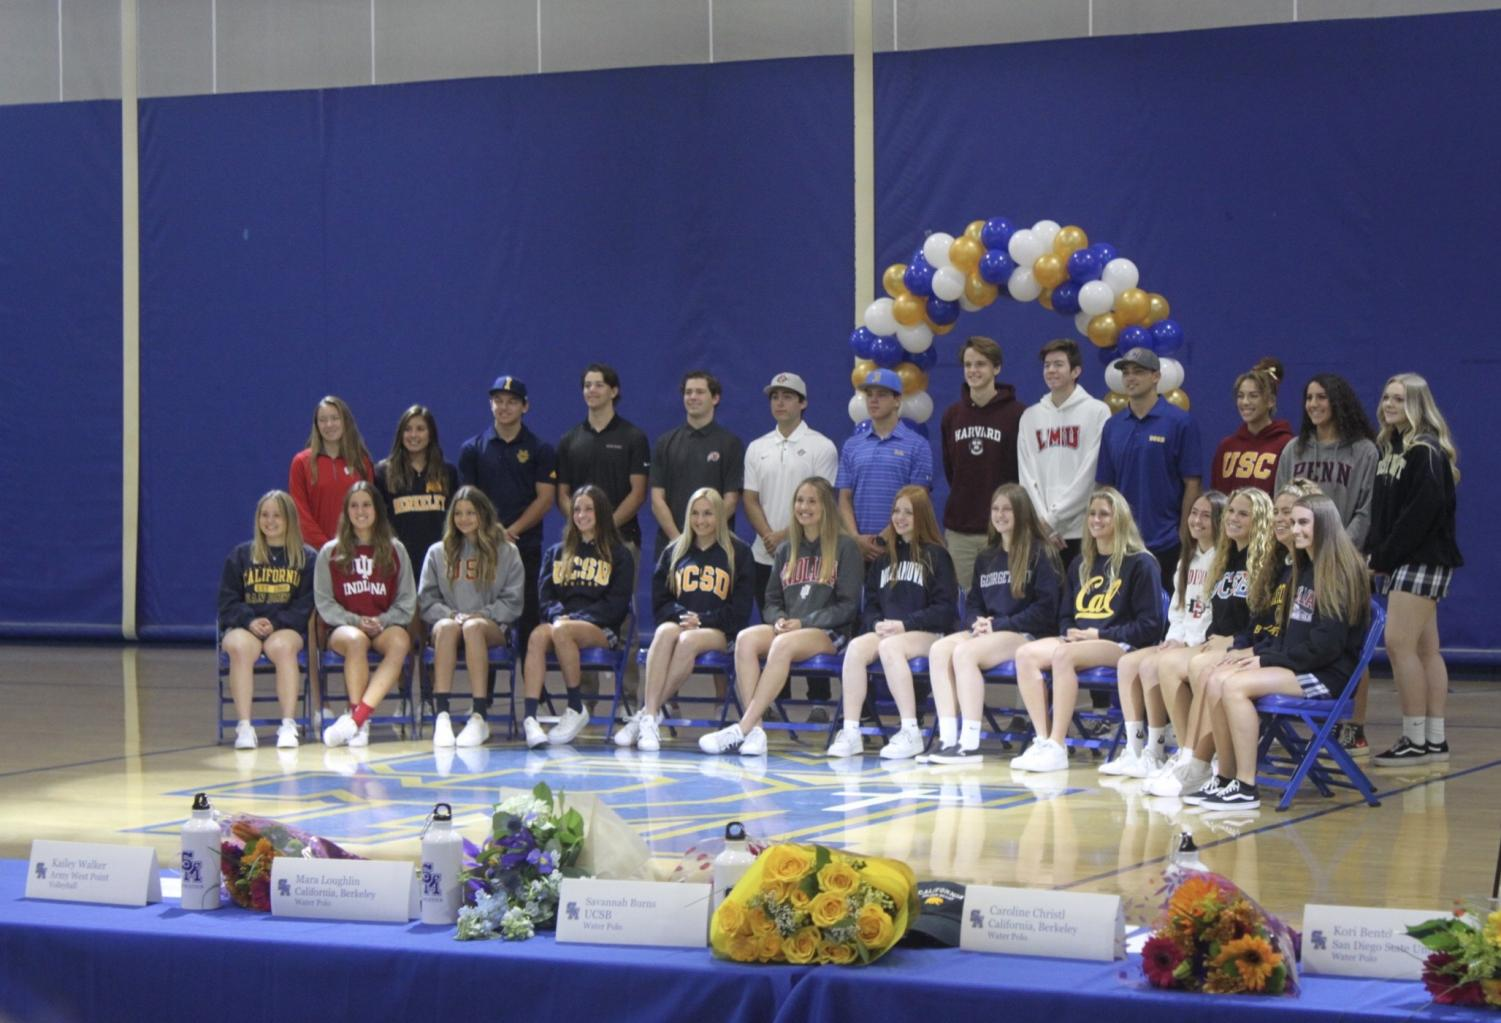 SM's 26 future collegiate athletes pose for a group picture after signing.